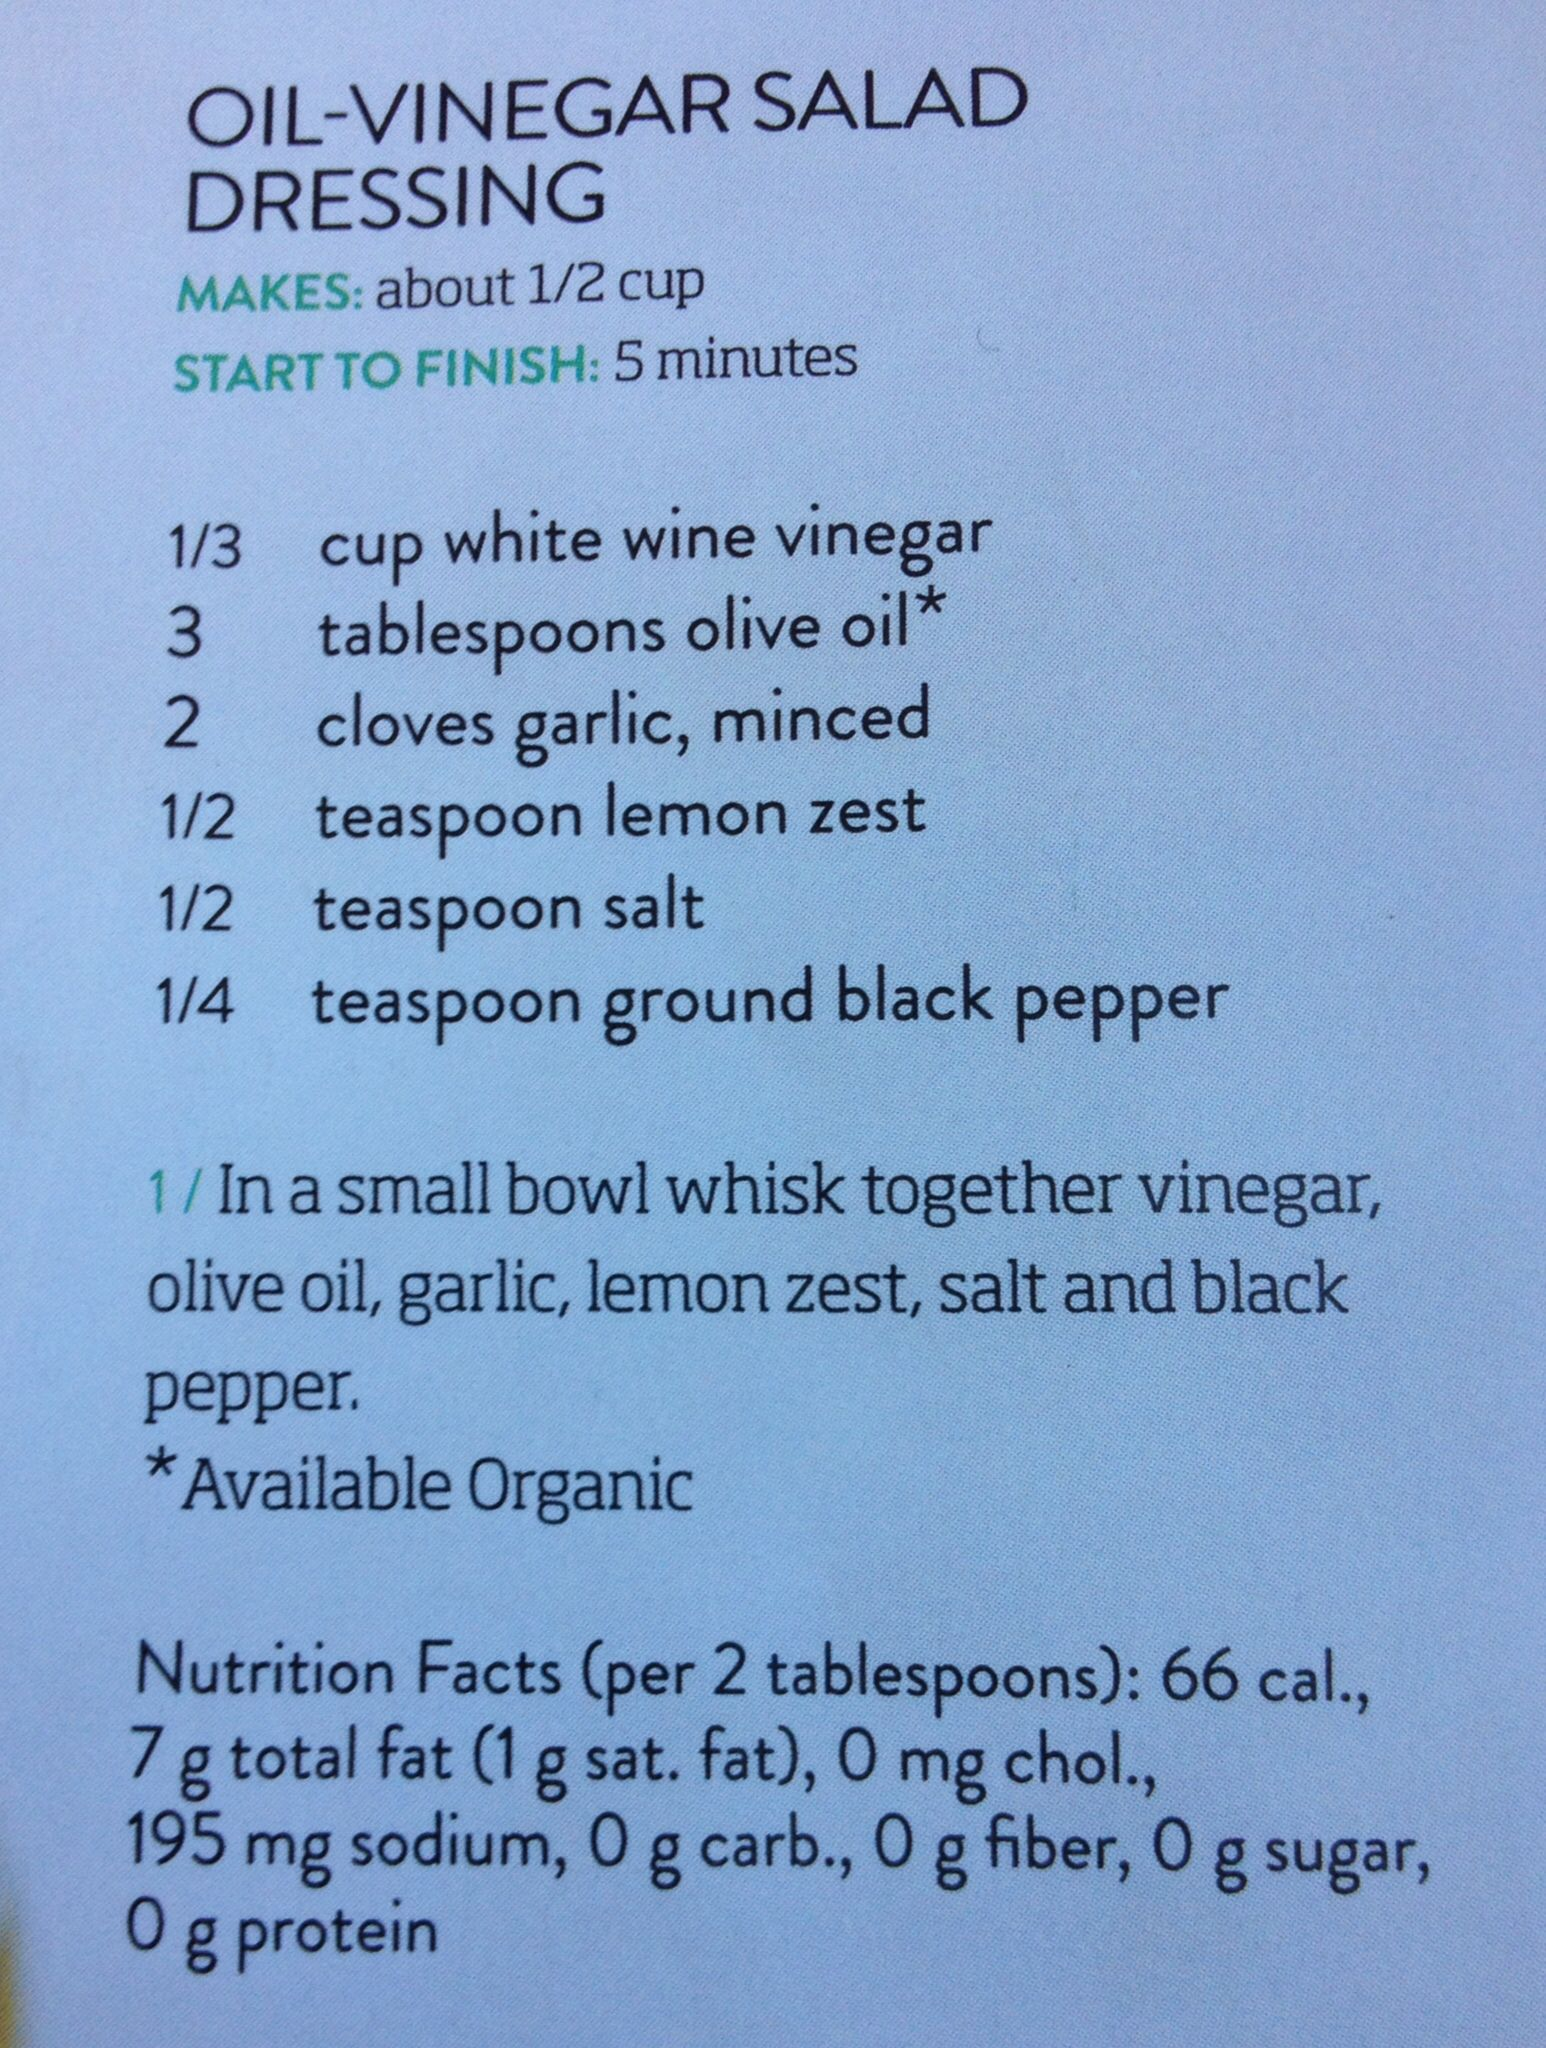 Oil-Vinegar Salad Dressing